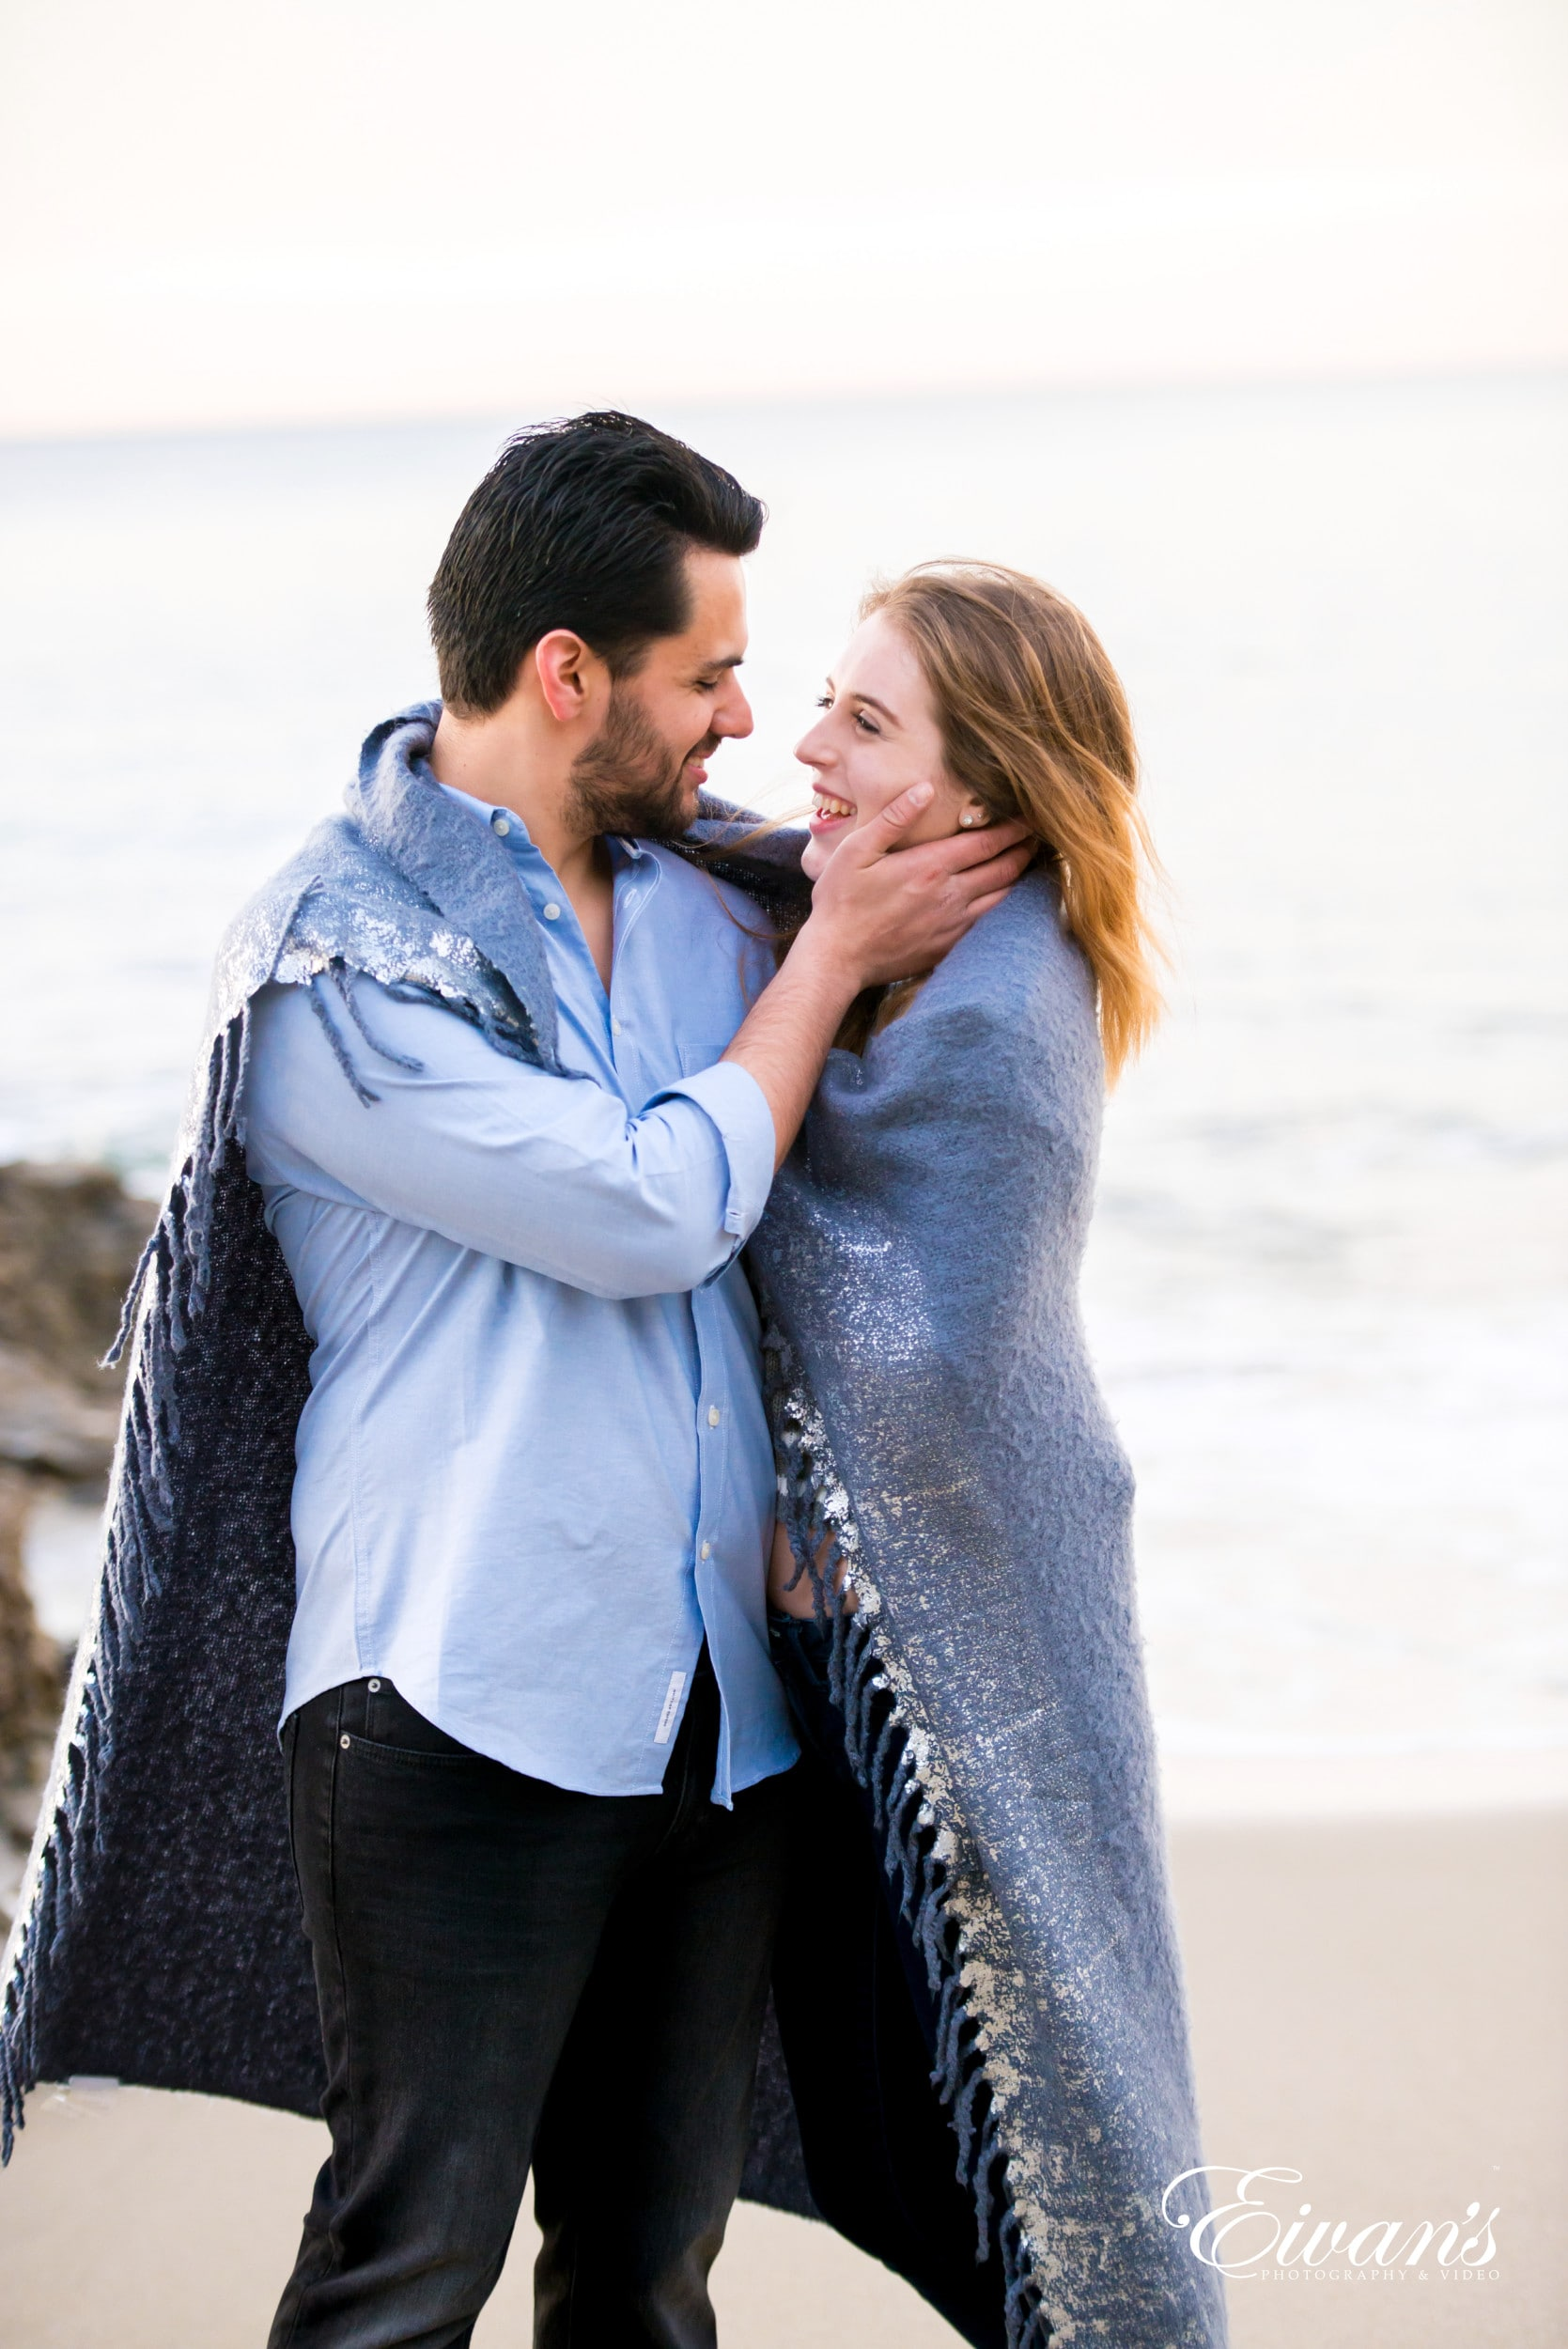 man in blue dress shirt kissing woman in black leather jacket on beach during daytime